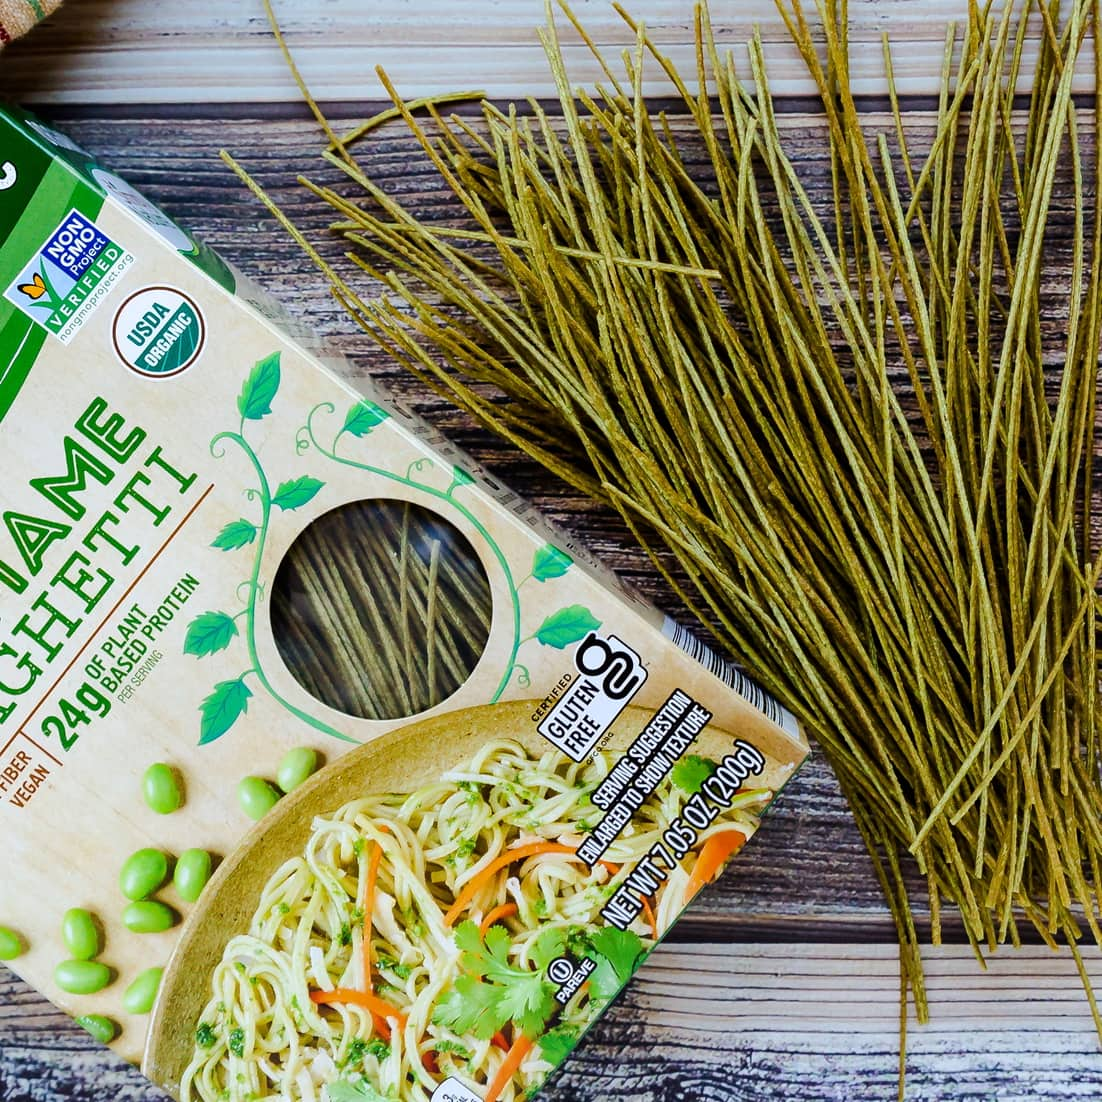 Box of edamame noodles next to unpackaged edmame noodles